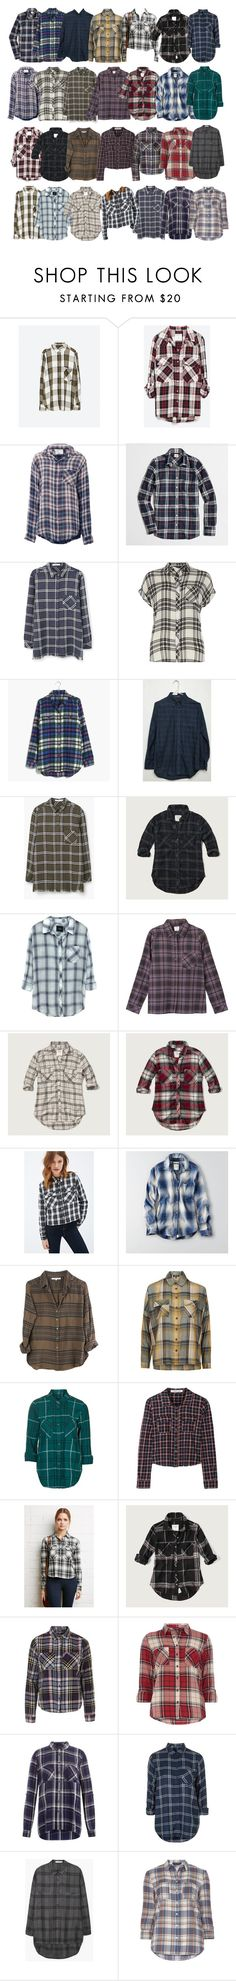 """""""Malia Hale inspired flannels"""" by xzozebo ❤ liked on Polyvore featuring Zara, Current/Elliott, J.Crew, MANGO, Dorothy Perkins, Madewell, Abercrombie & Fitch, Rails, RVCA and Forever 21"""